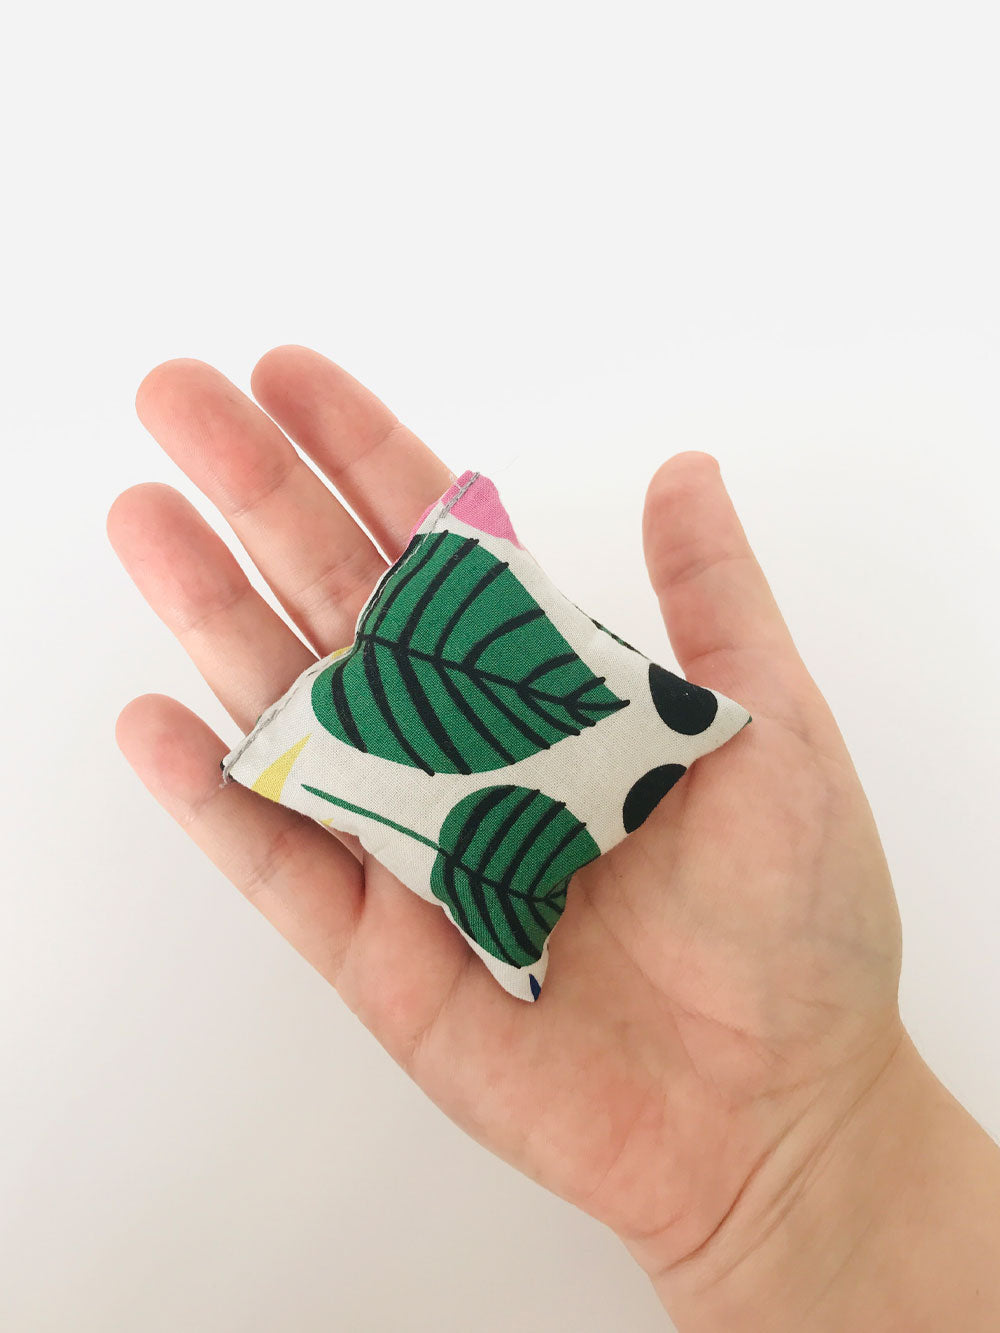 A single square hand warmer is held in an open hand. The hand warmer has a tropical print fabric in large green leaves, yellow, pink, and navy blue flowers. Abstract shapes in black. All on a white background.